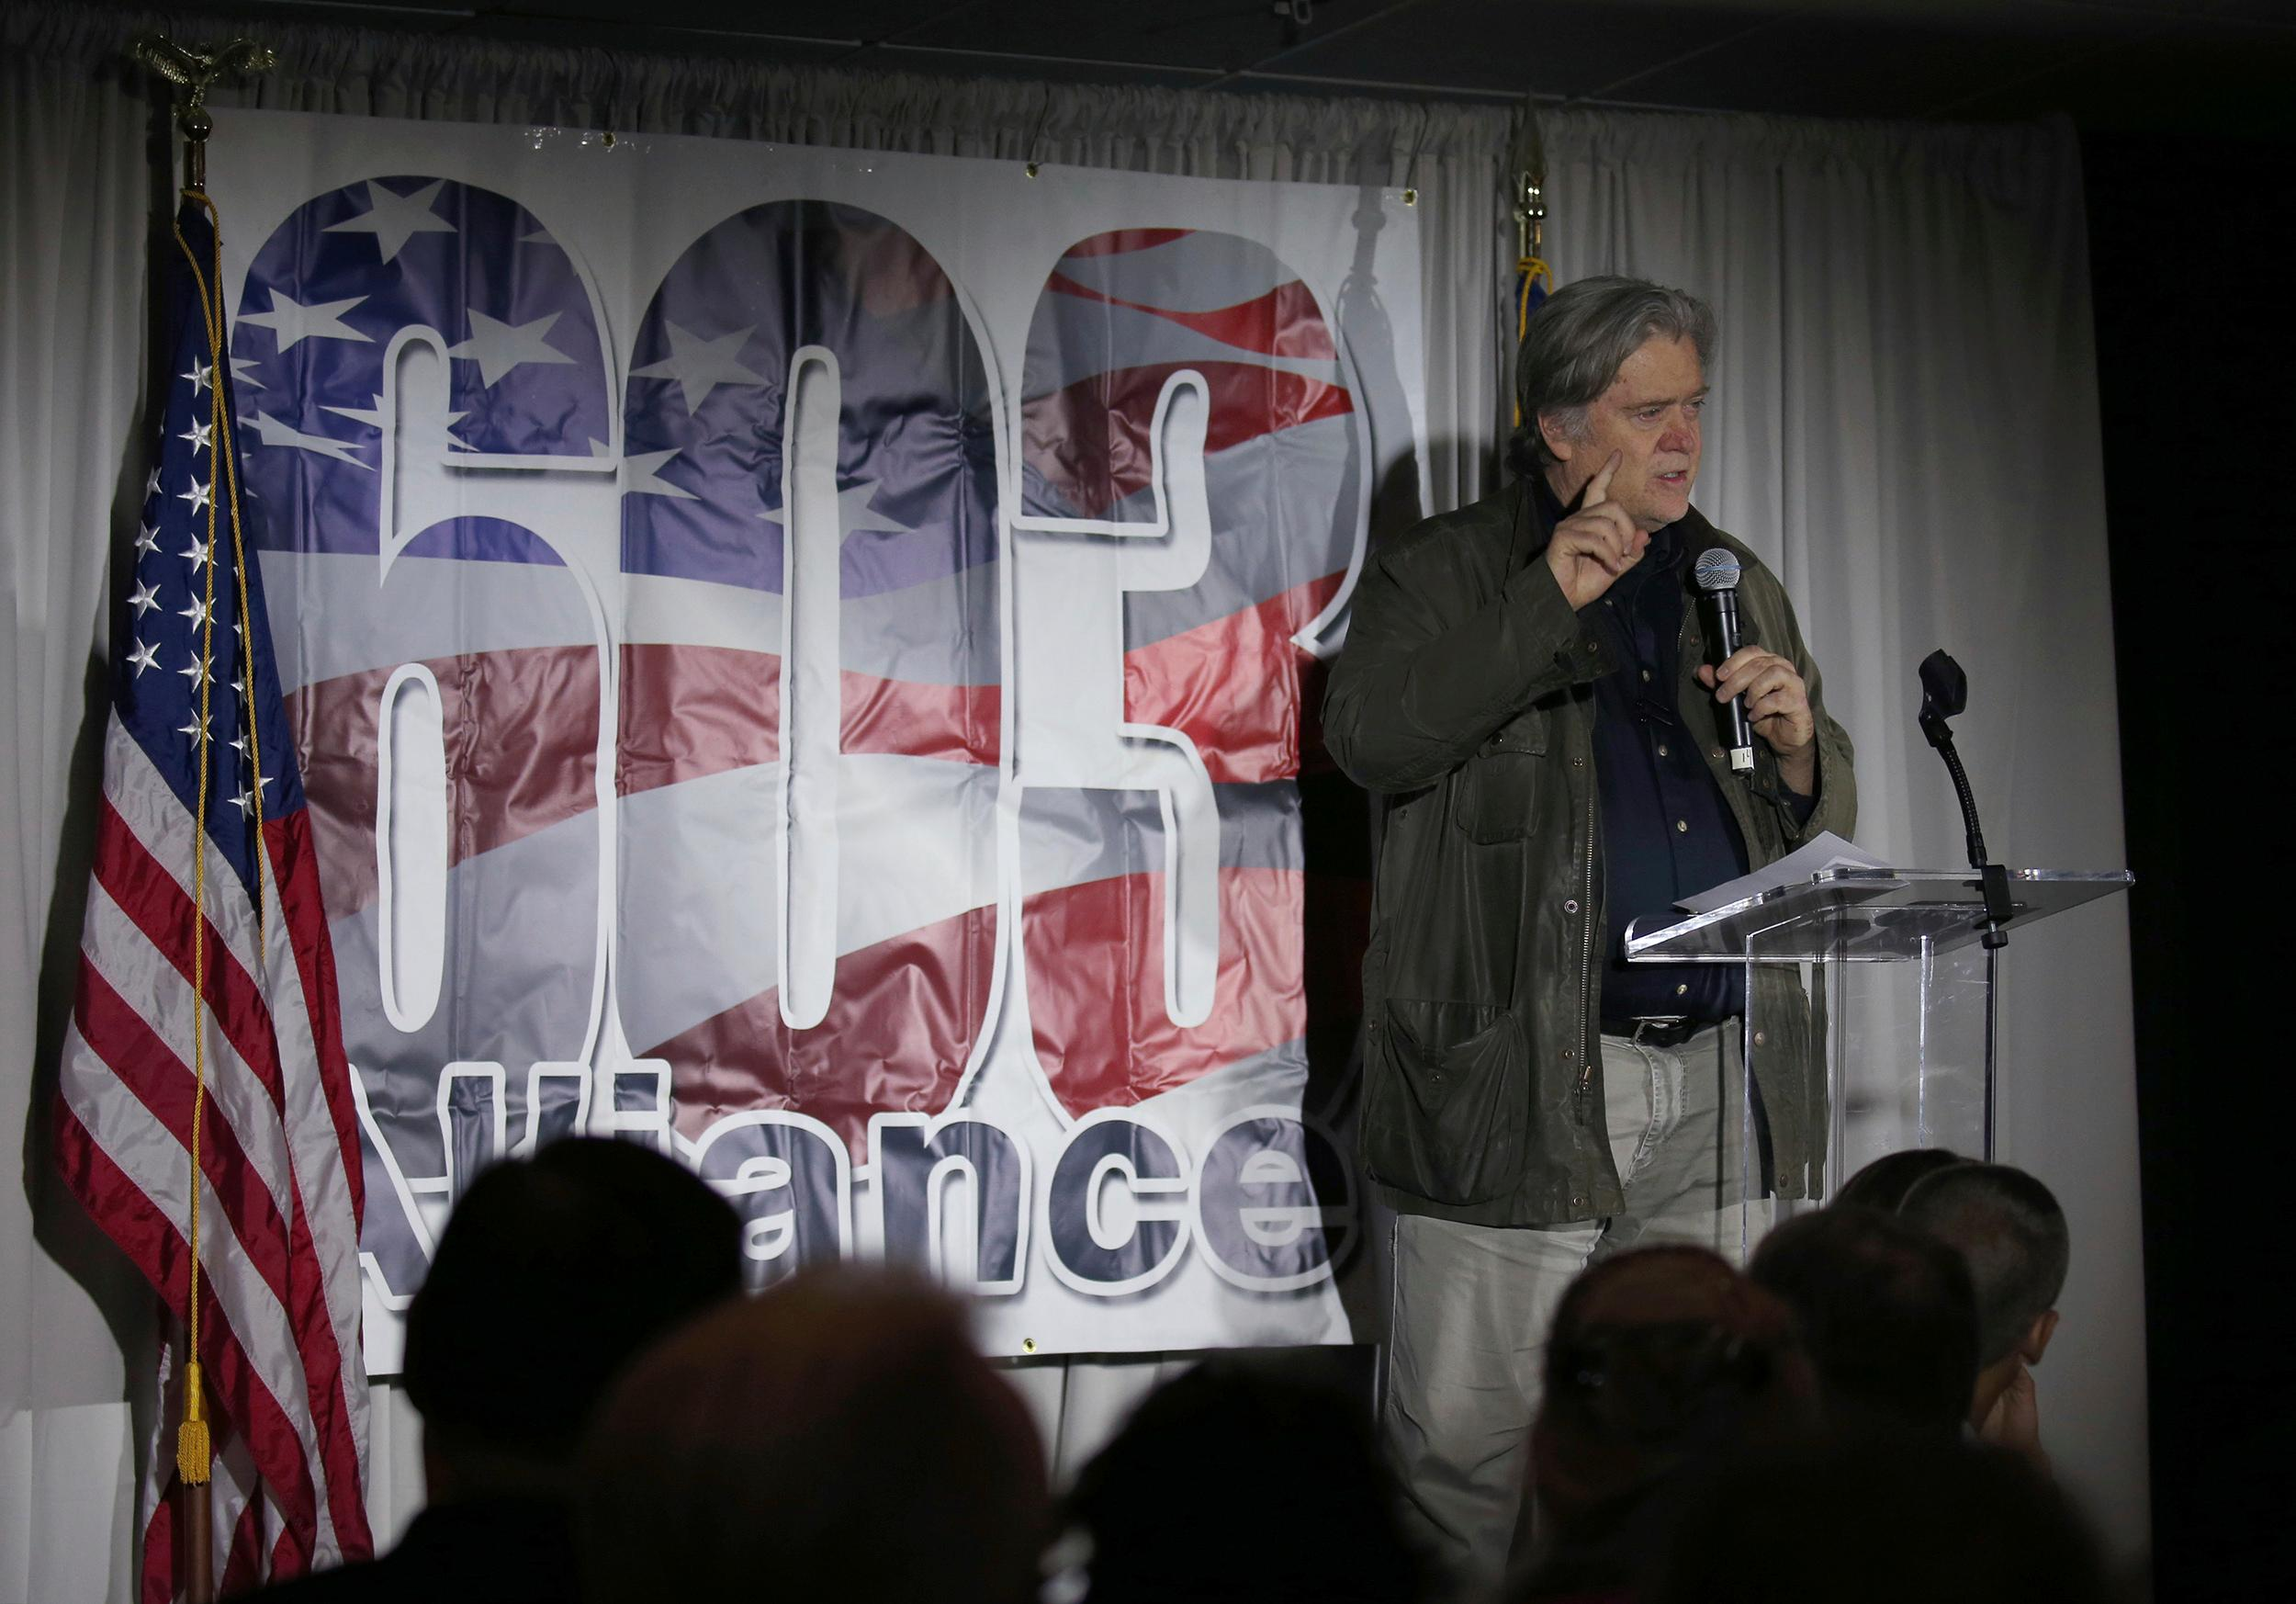 Steve Bannon, the former chief strategist to President Donald Trump, speaks during an event in Manchester, N.H., Thursday, Nov. 9, 2017. (AP Photo/Mary Schwalm)